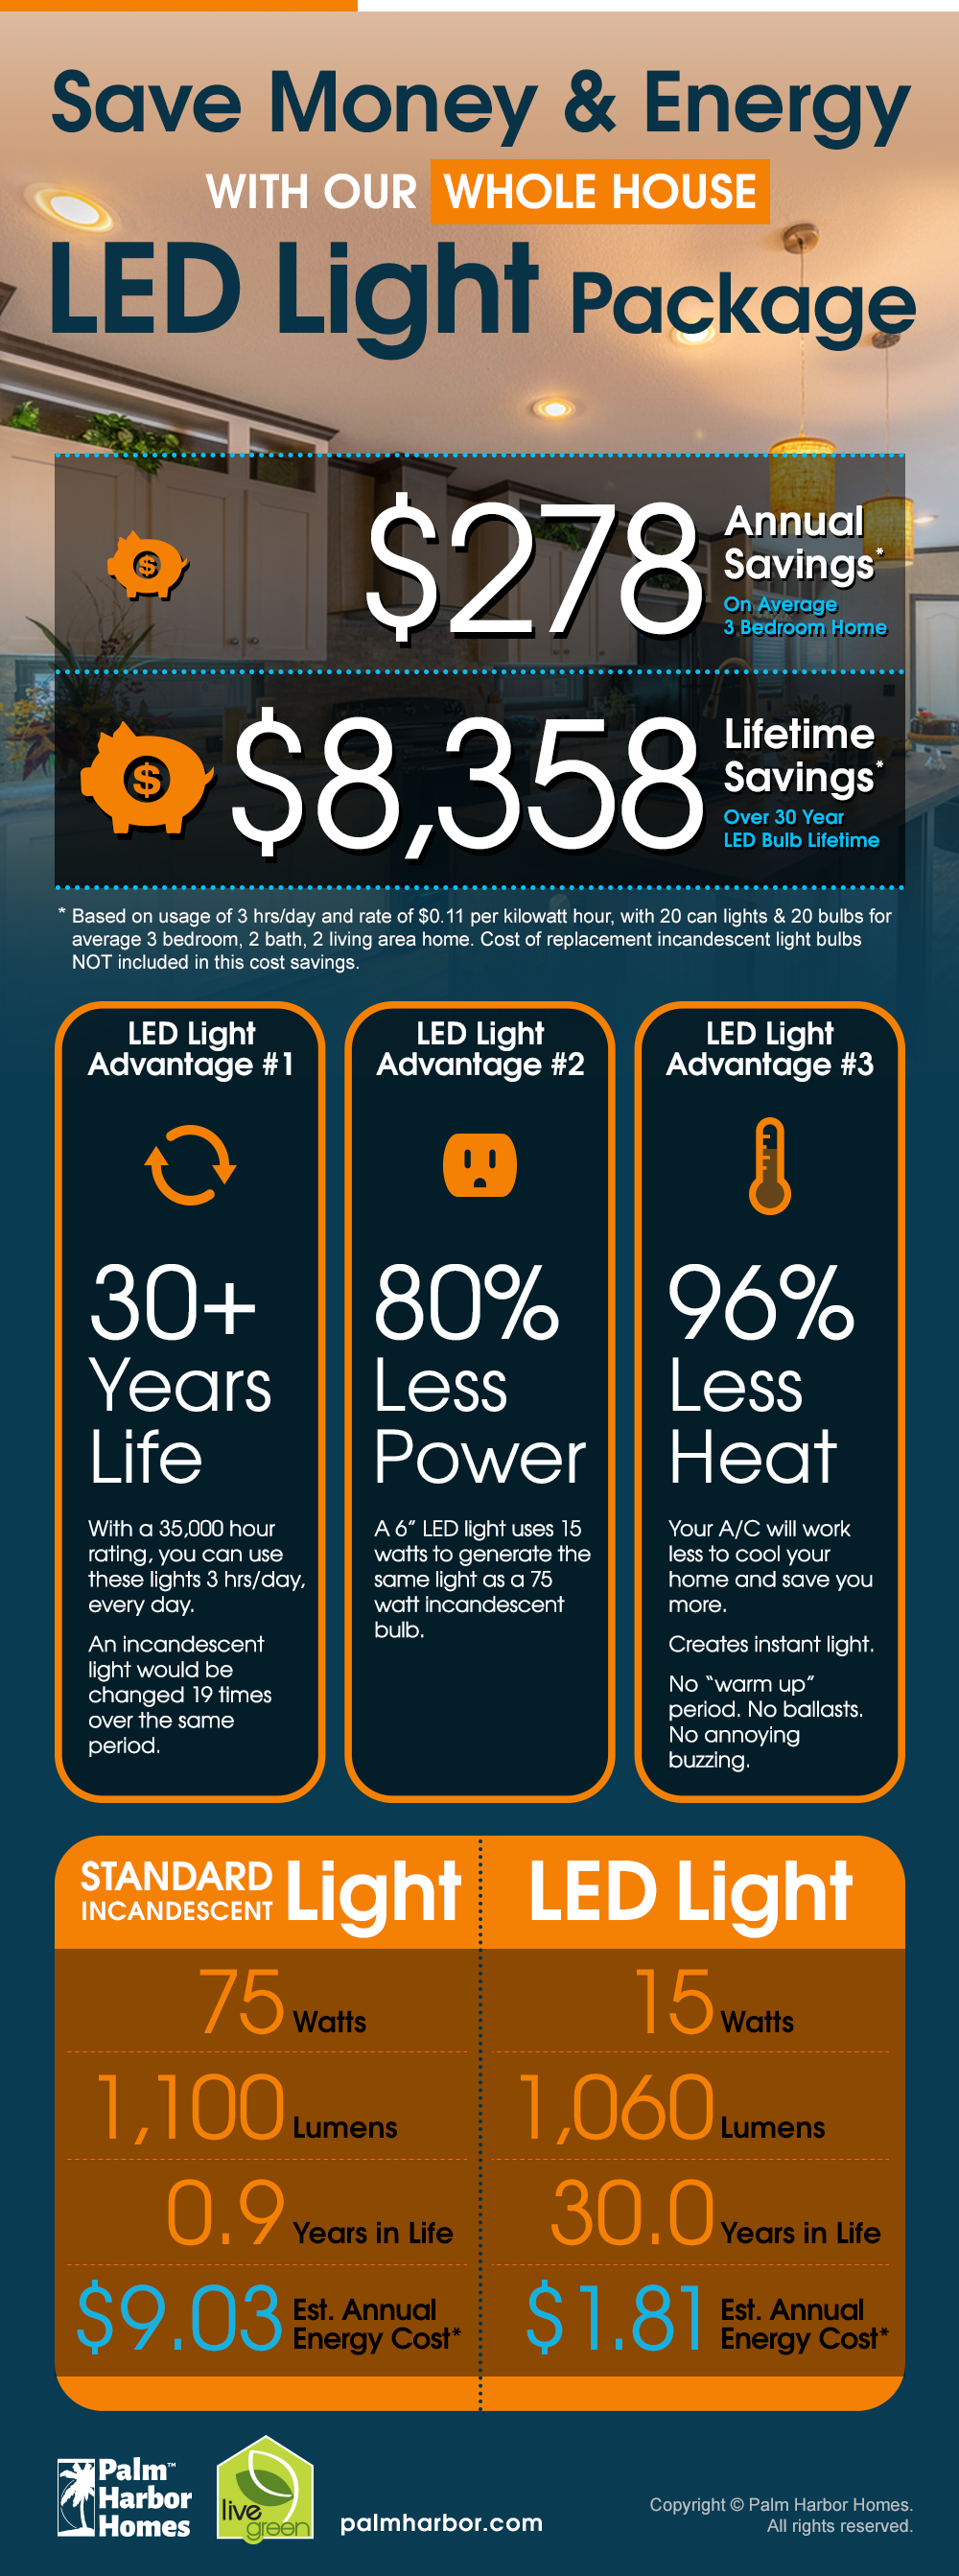 LED Light Money Saving Infographic